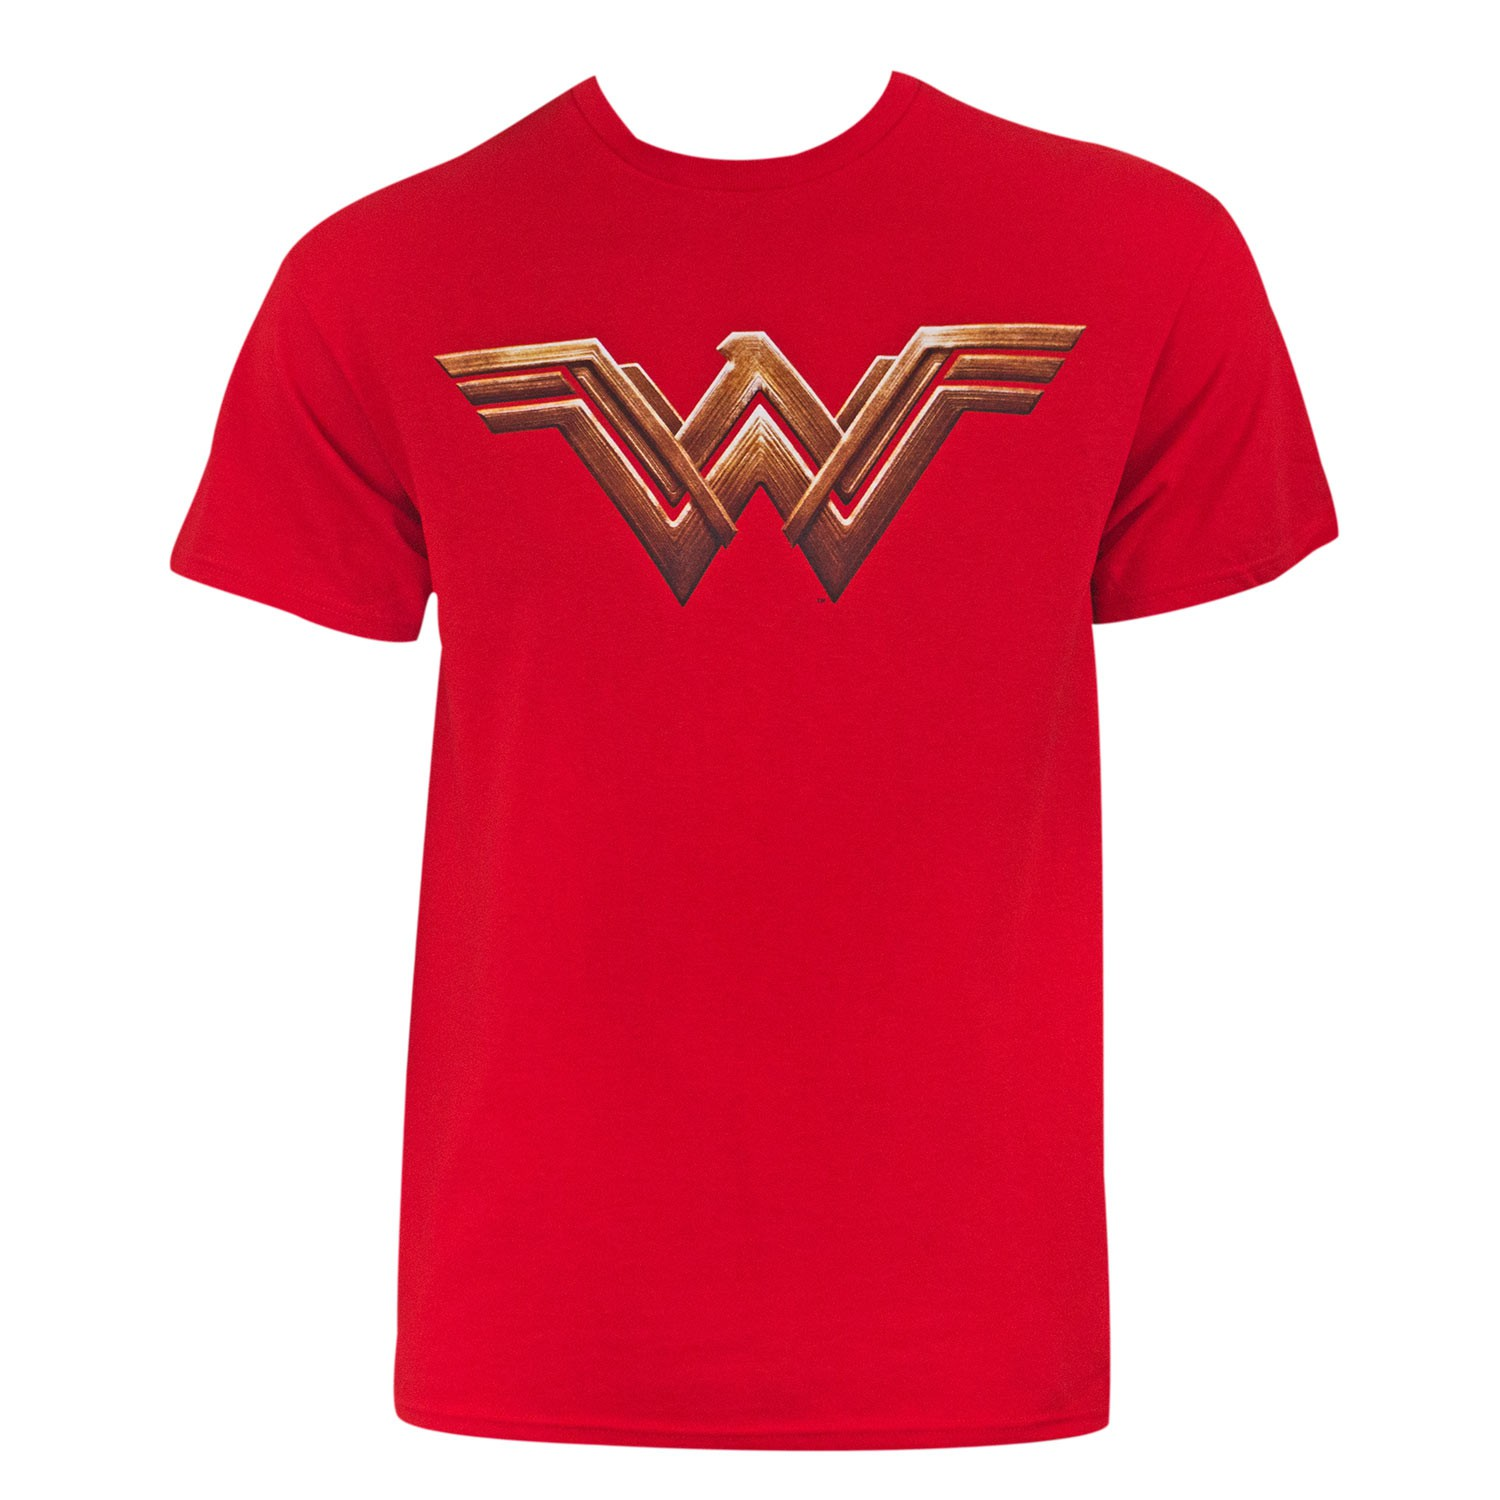 Justice League Wonder Woman Red Tee Shirt